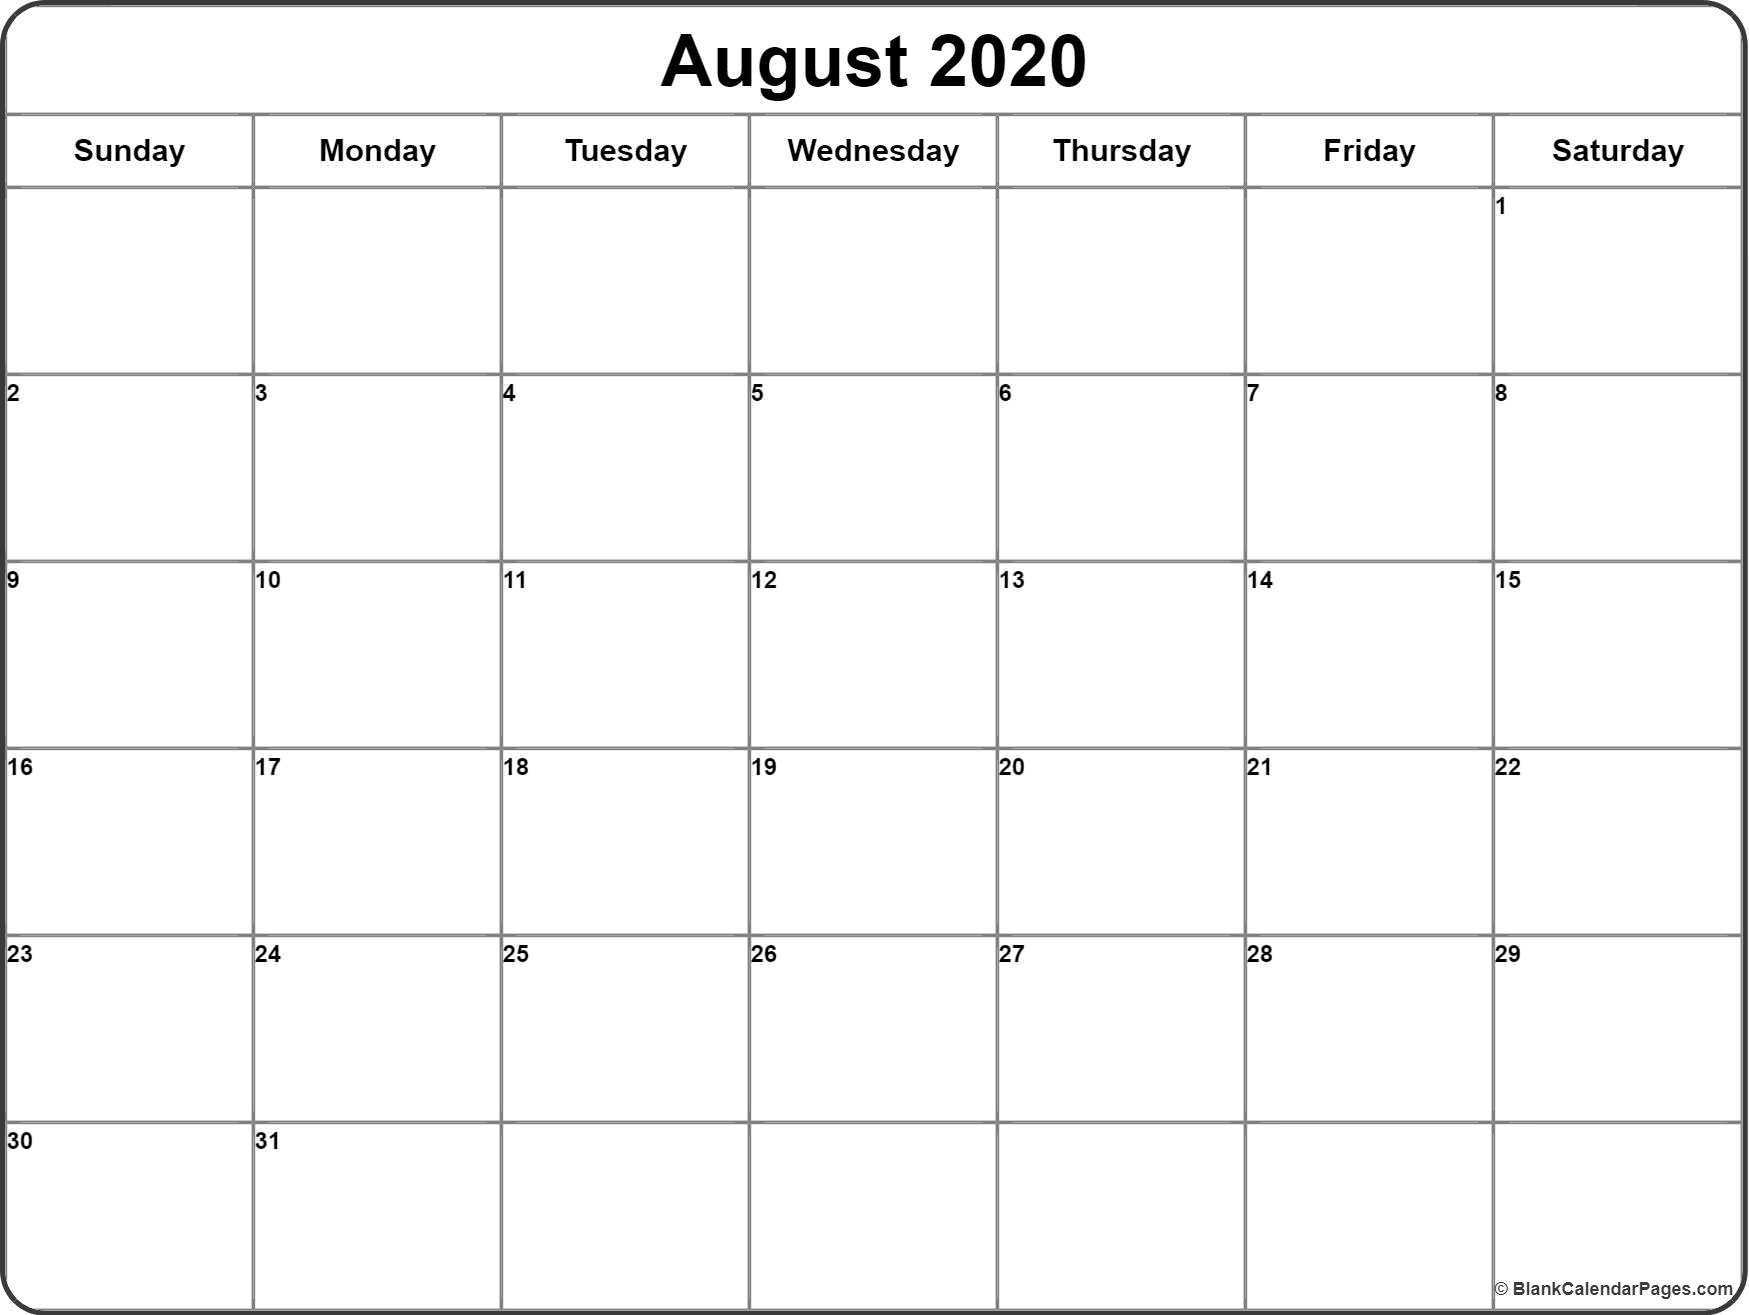 August 2020 Calendar | Free Printable Monthly Calendars with Kid Freiendly August 2020 Calendars